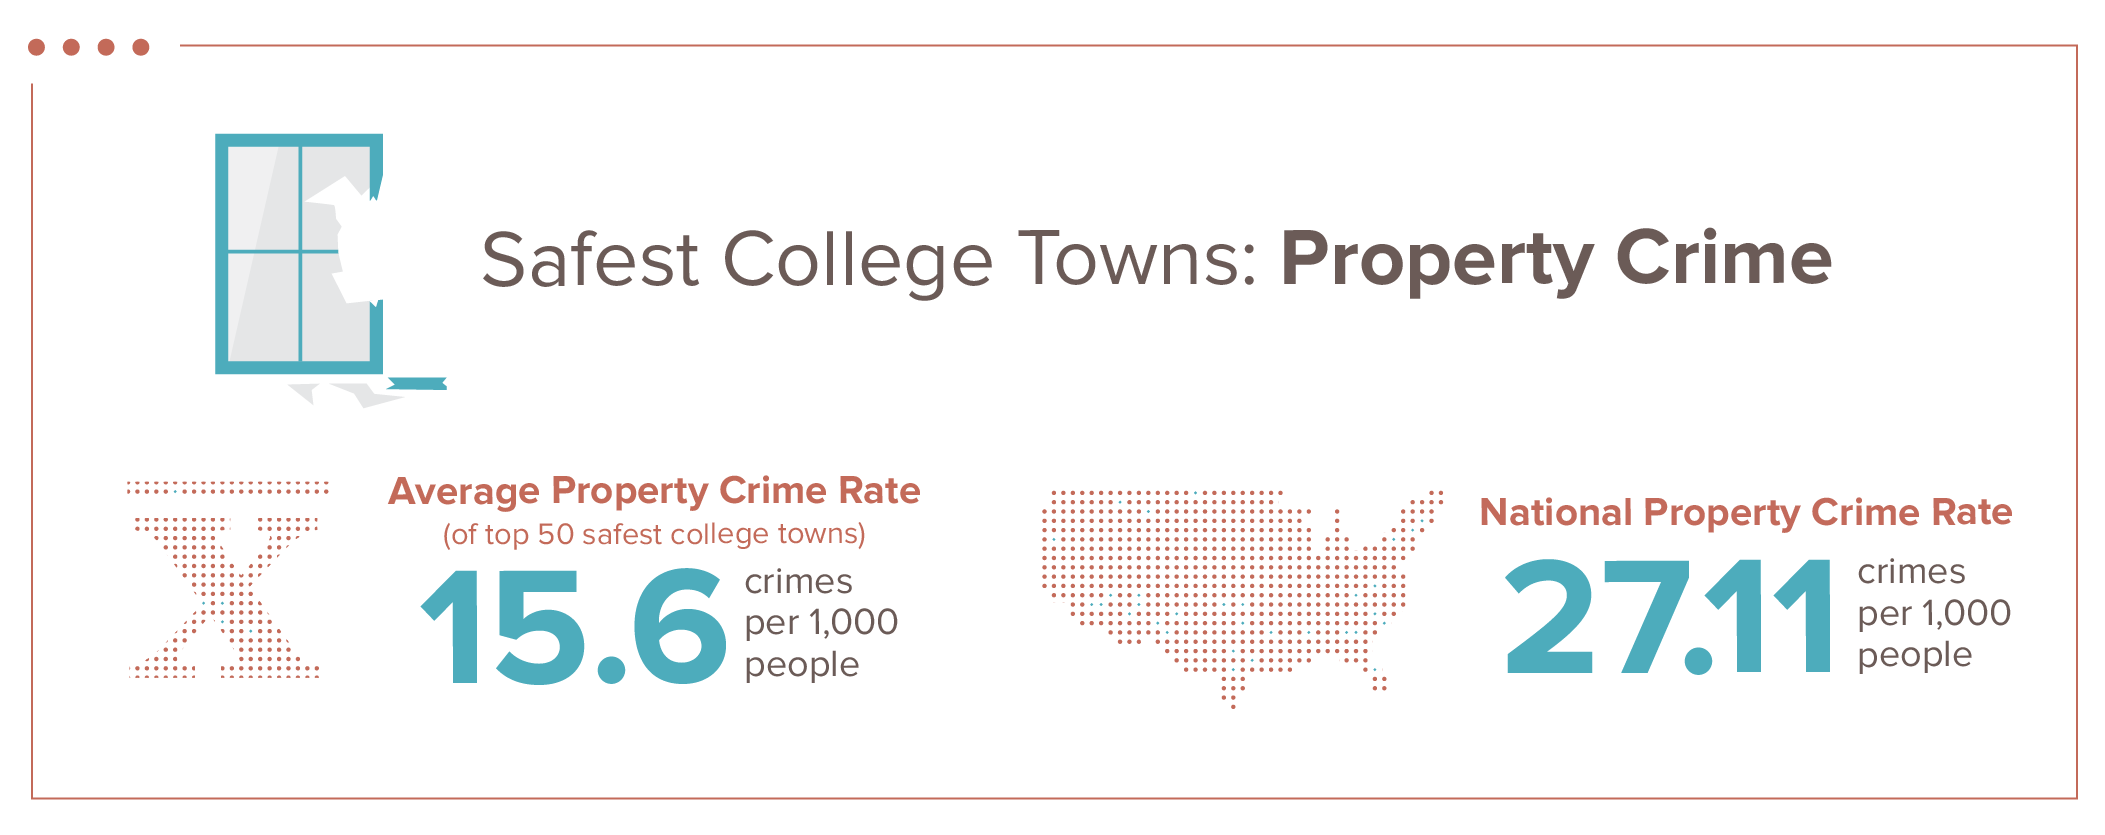 property crime graphic showing rates per thousand people